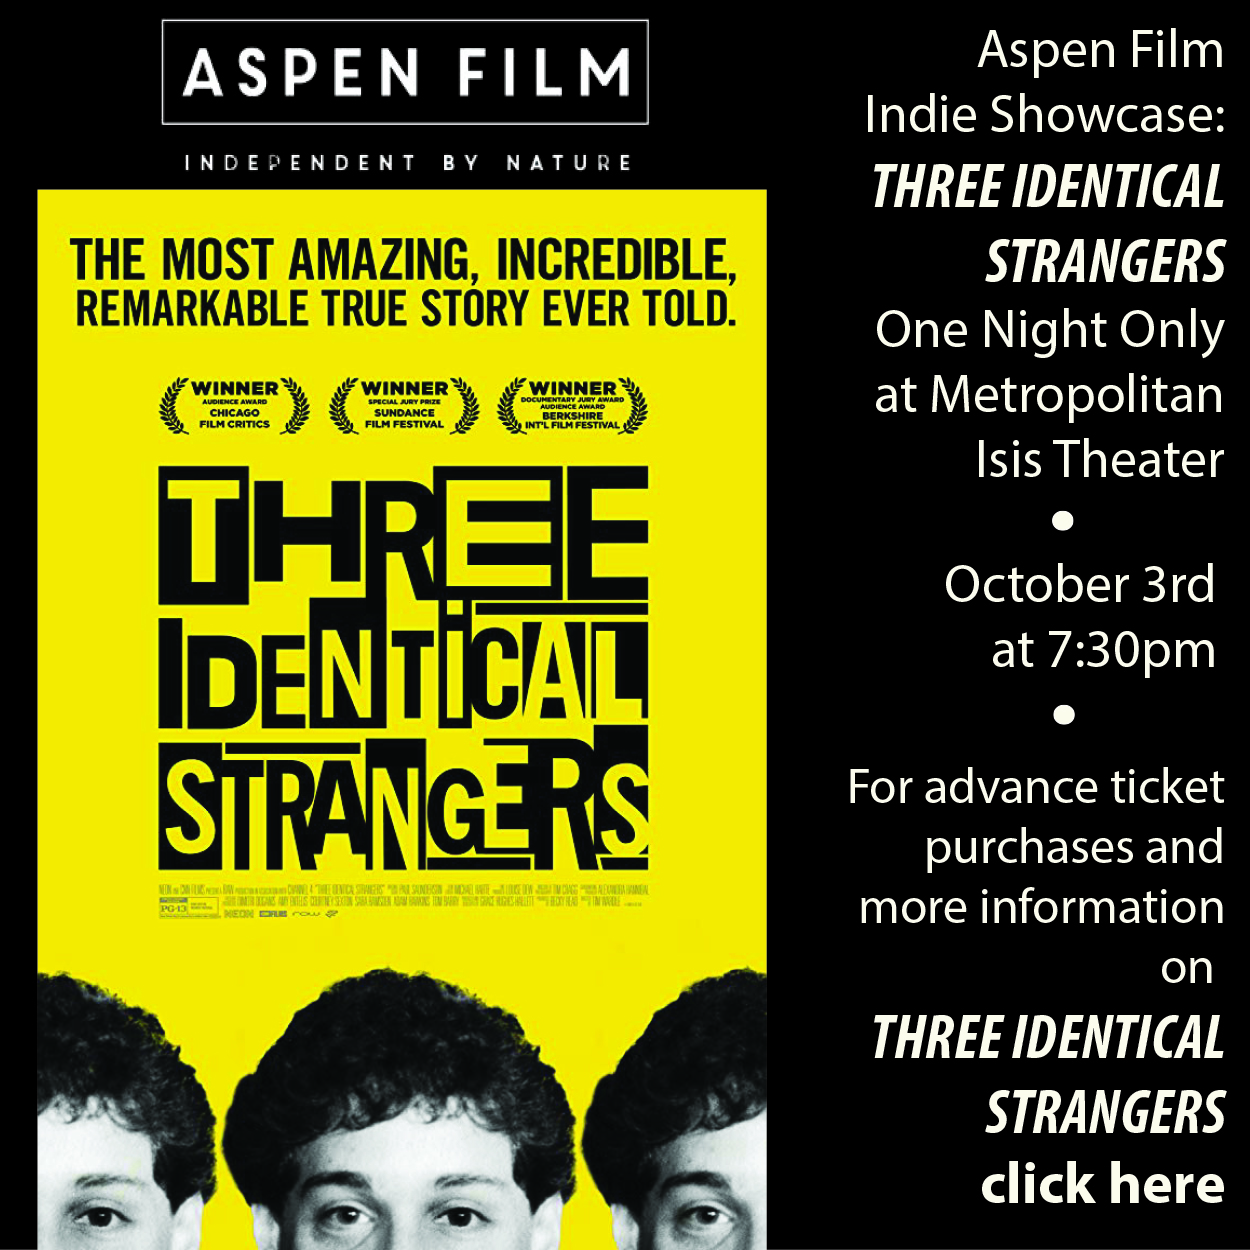 Indie Showcase - 3 Identical Strangers